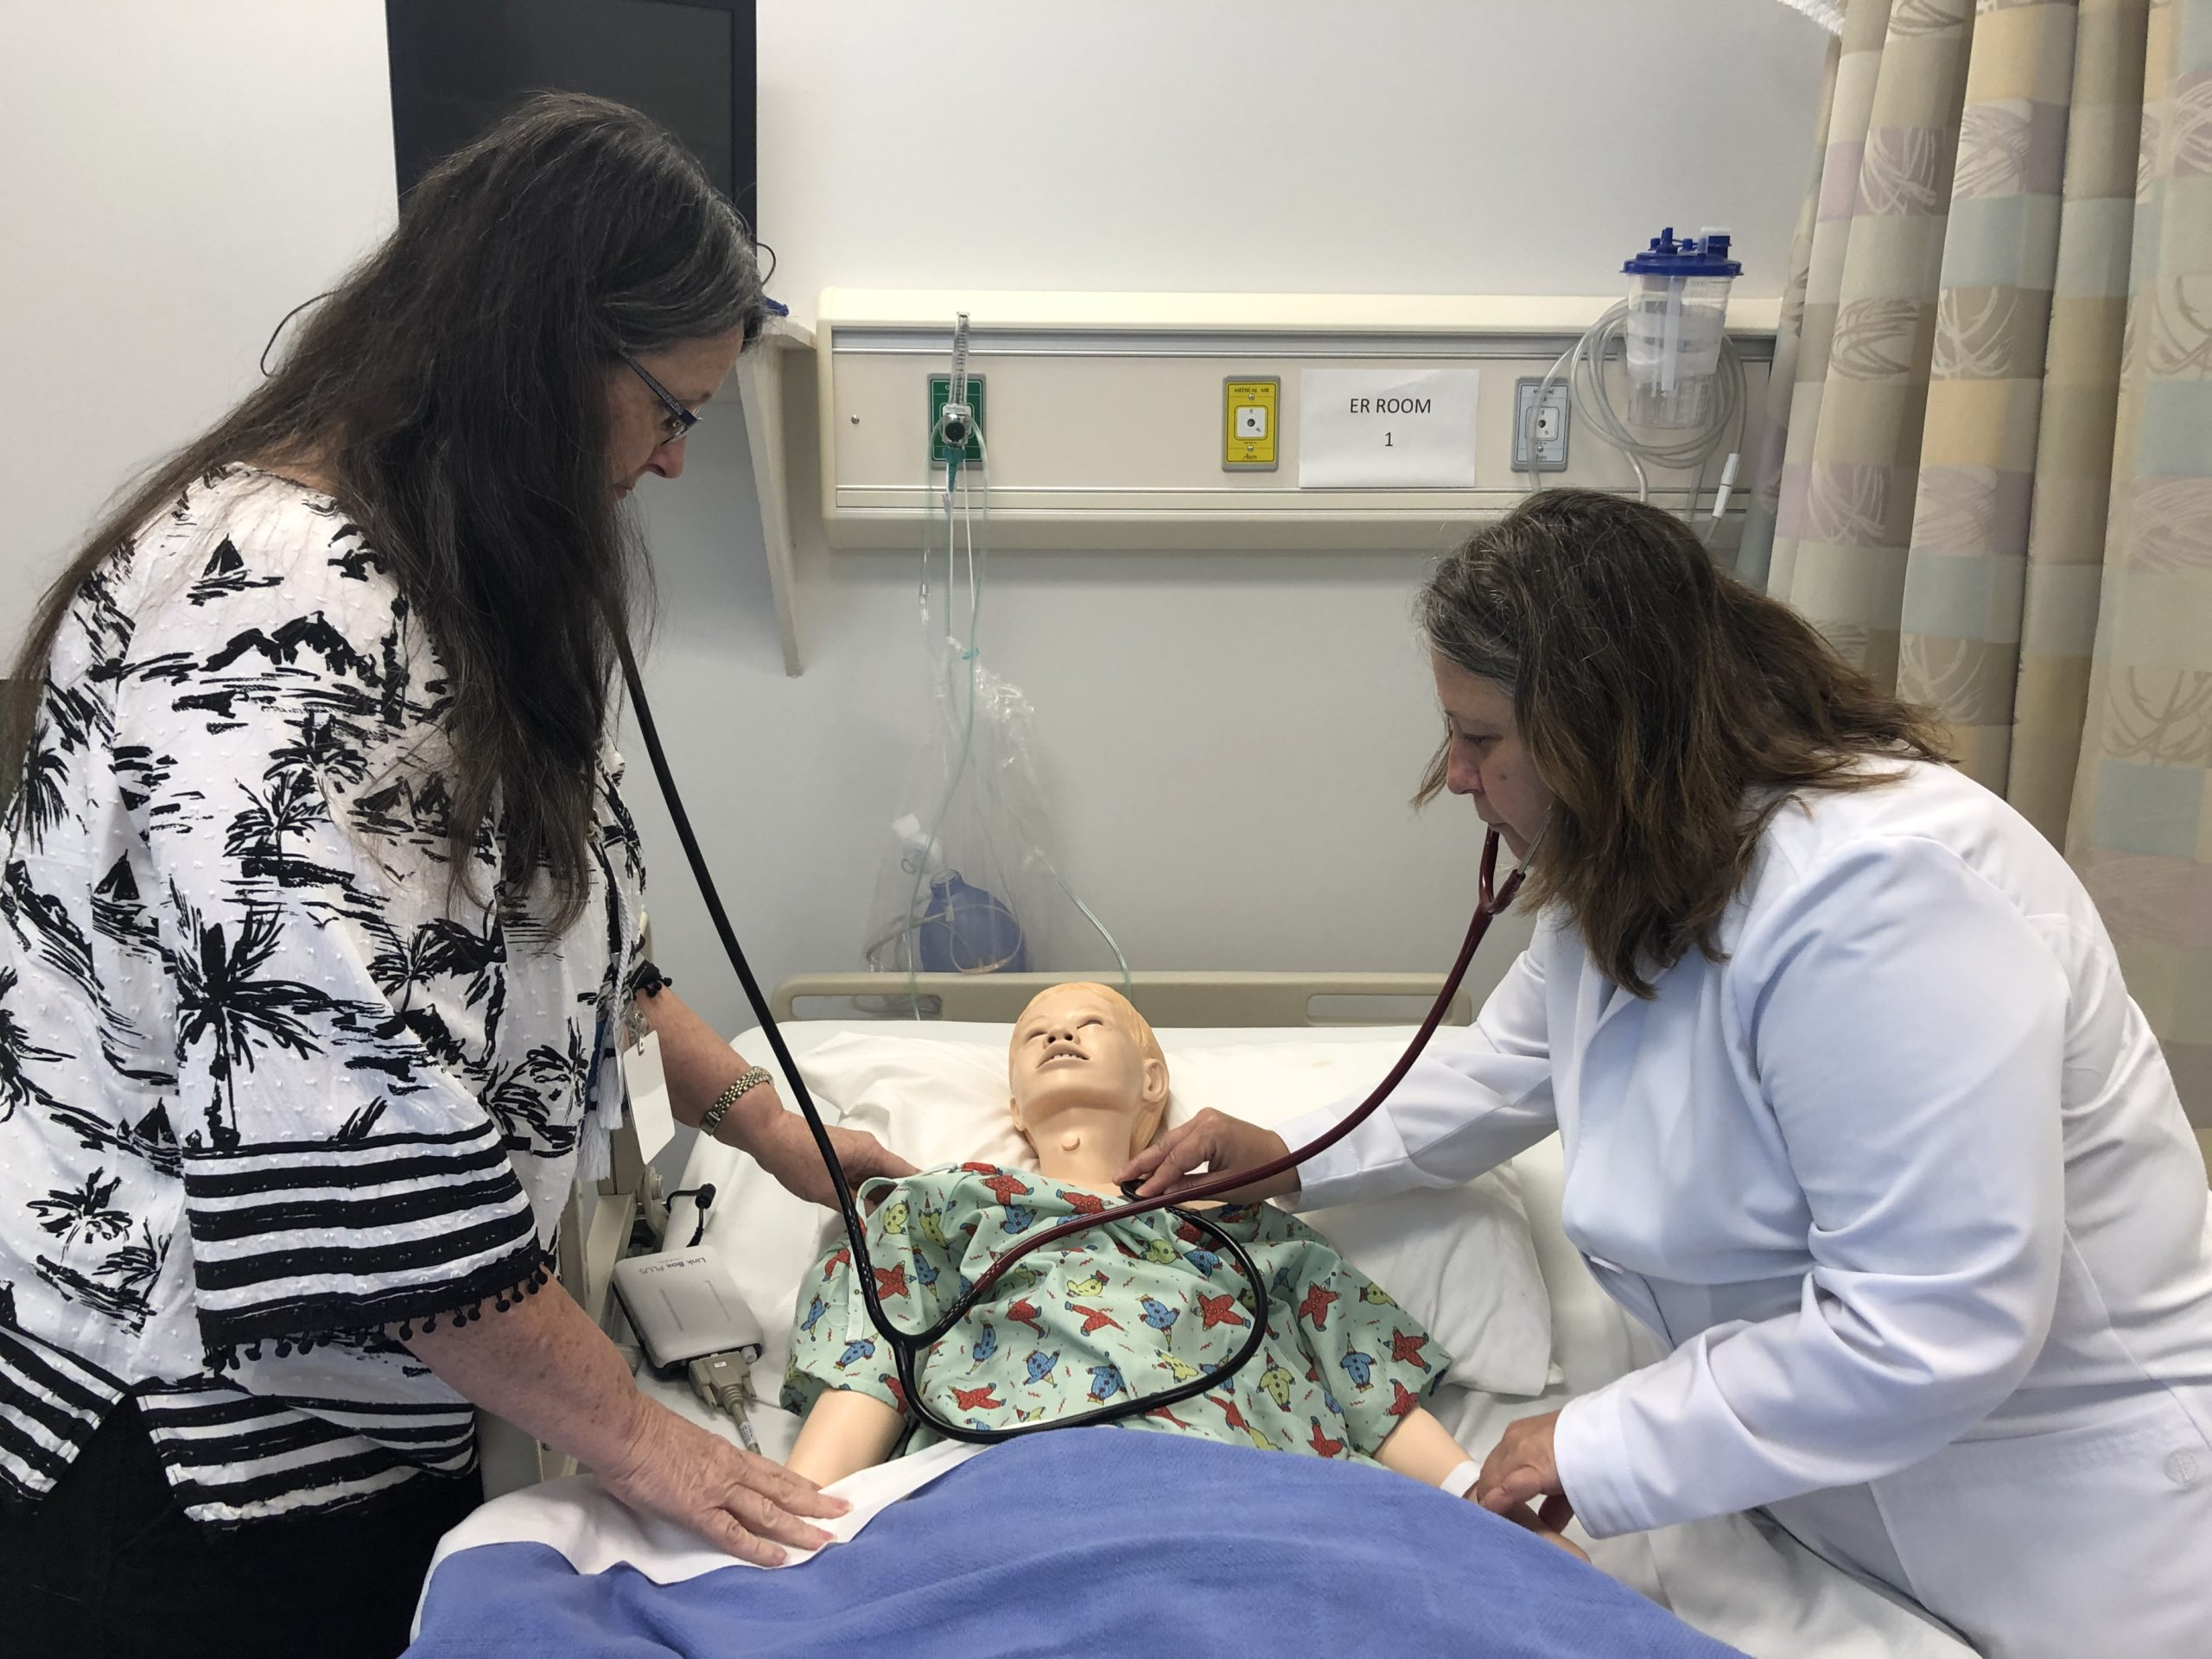 An innovative approach helps nursing students succeed in face of pandemic limitations